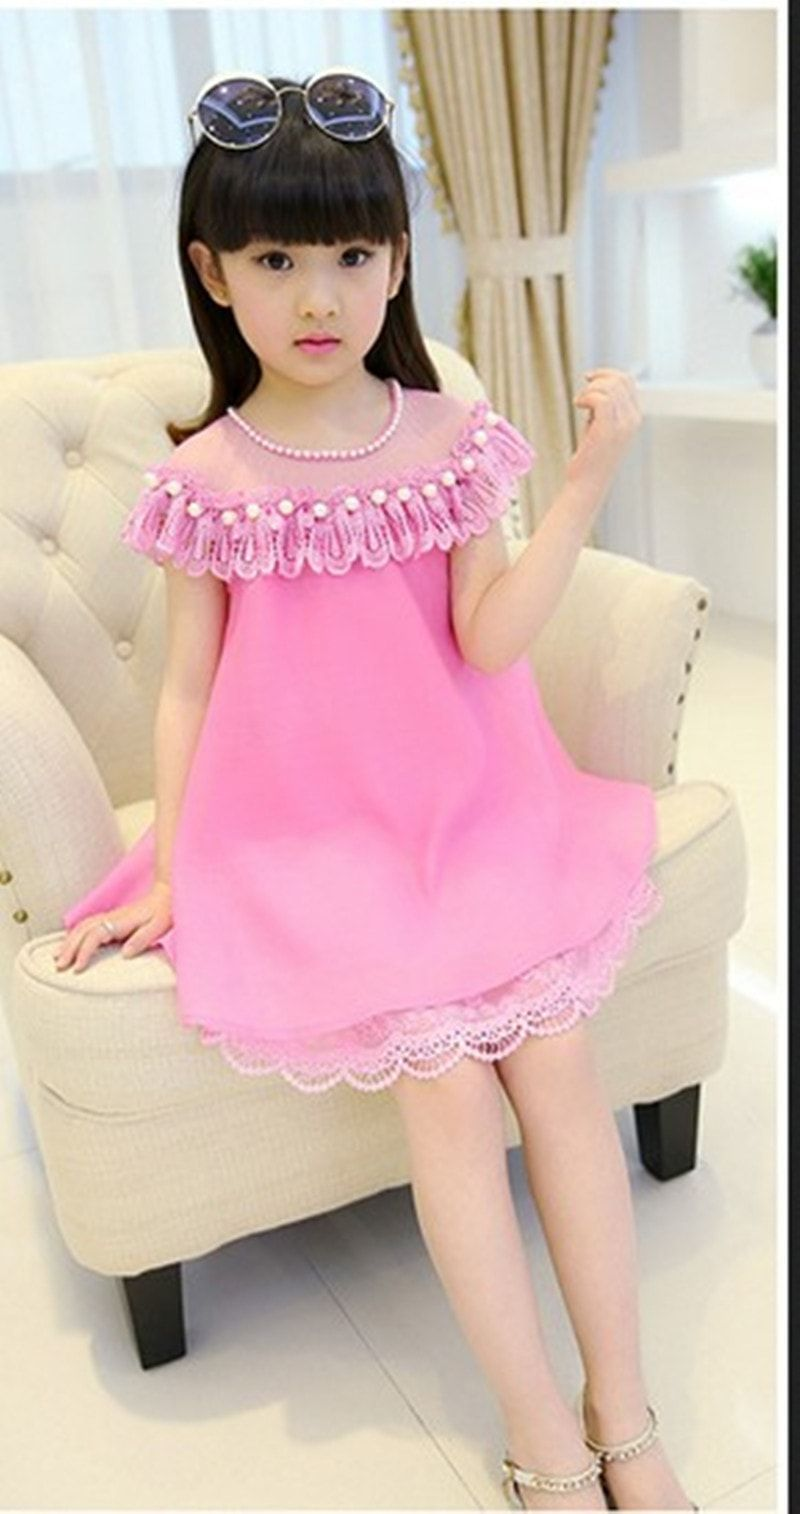 755ee13b6 Girls Princess Dress Children Clothing Kids Lace Dresses Baby Girl Party  Prom Pearl Dress